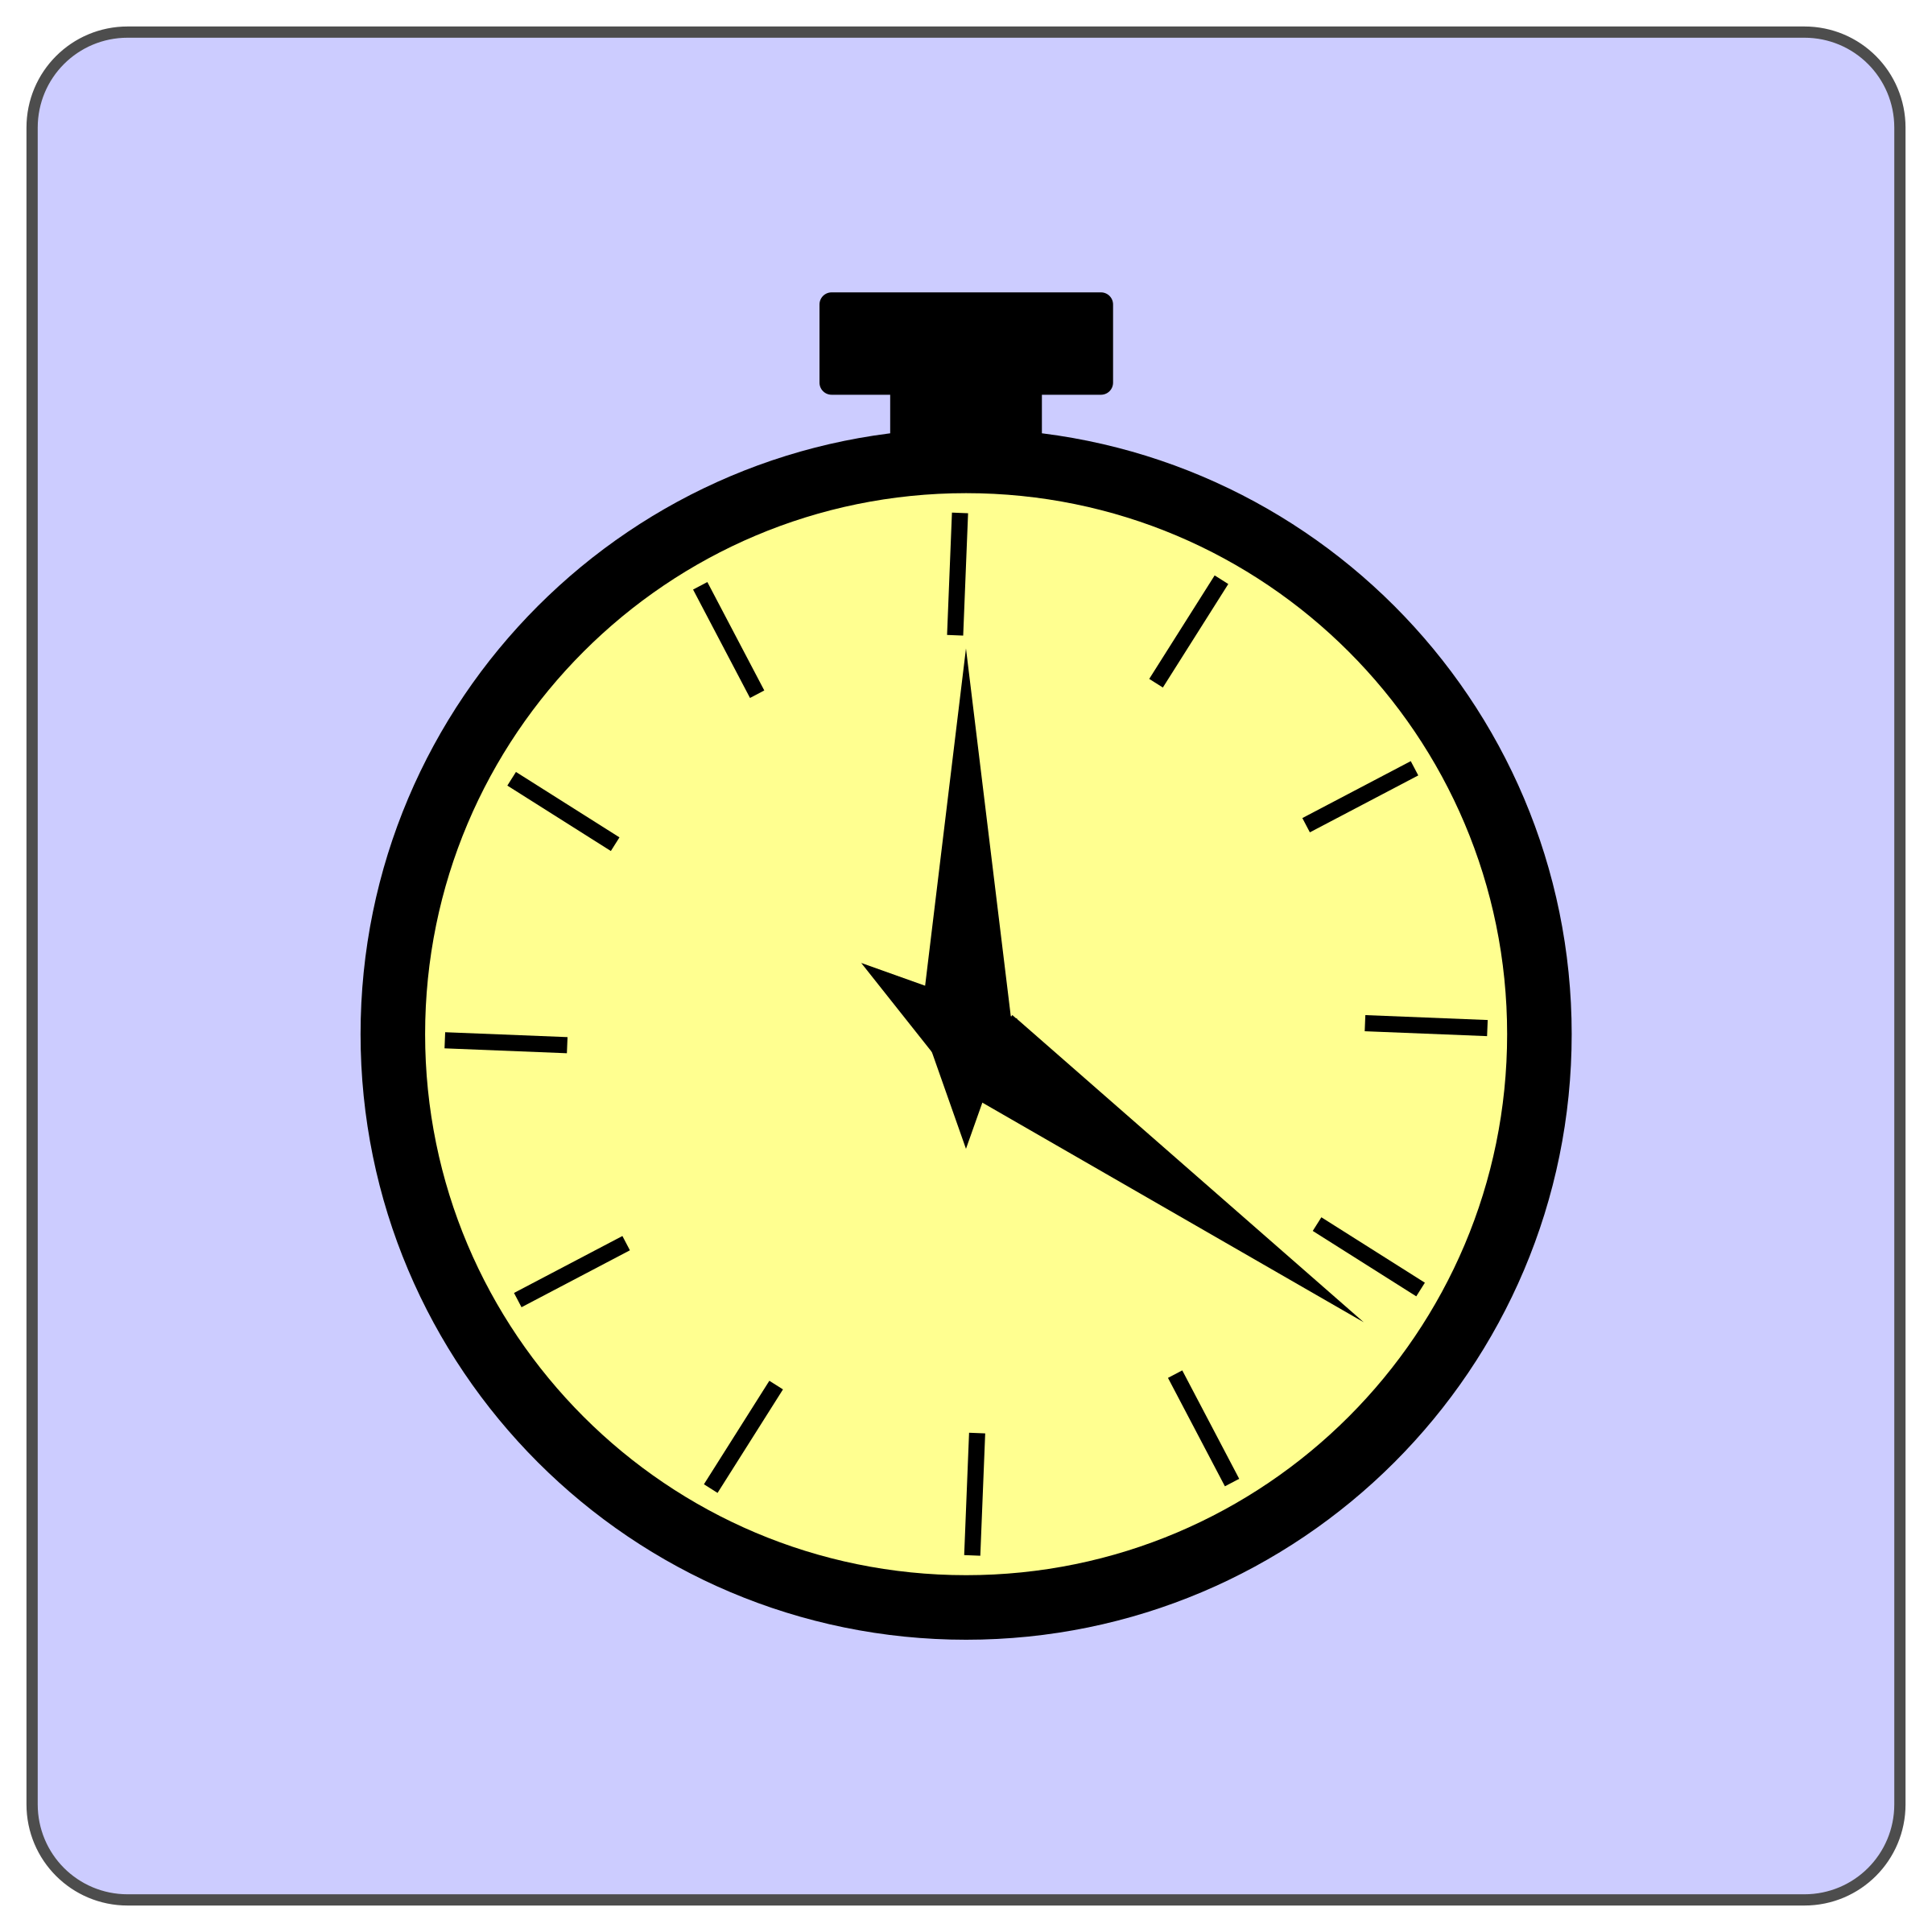 Pocket watch icon by CoD_fsfe